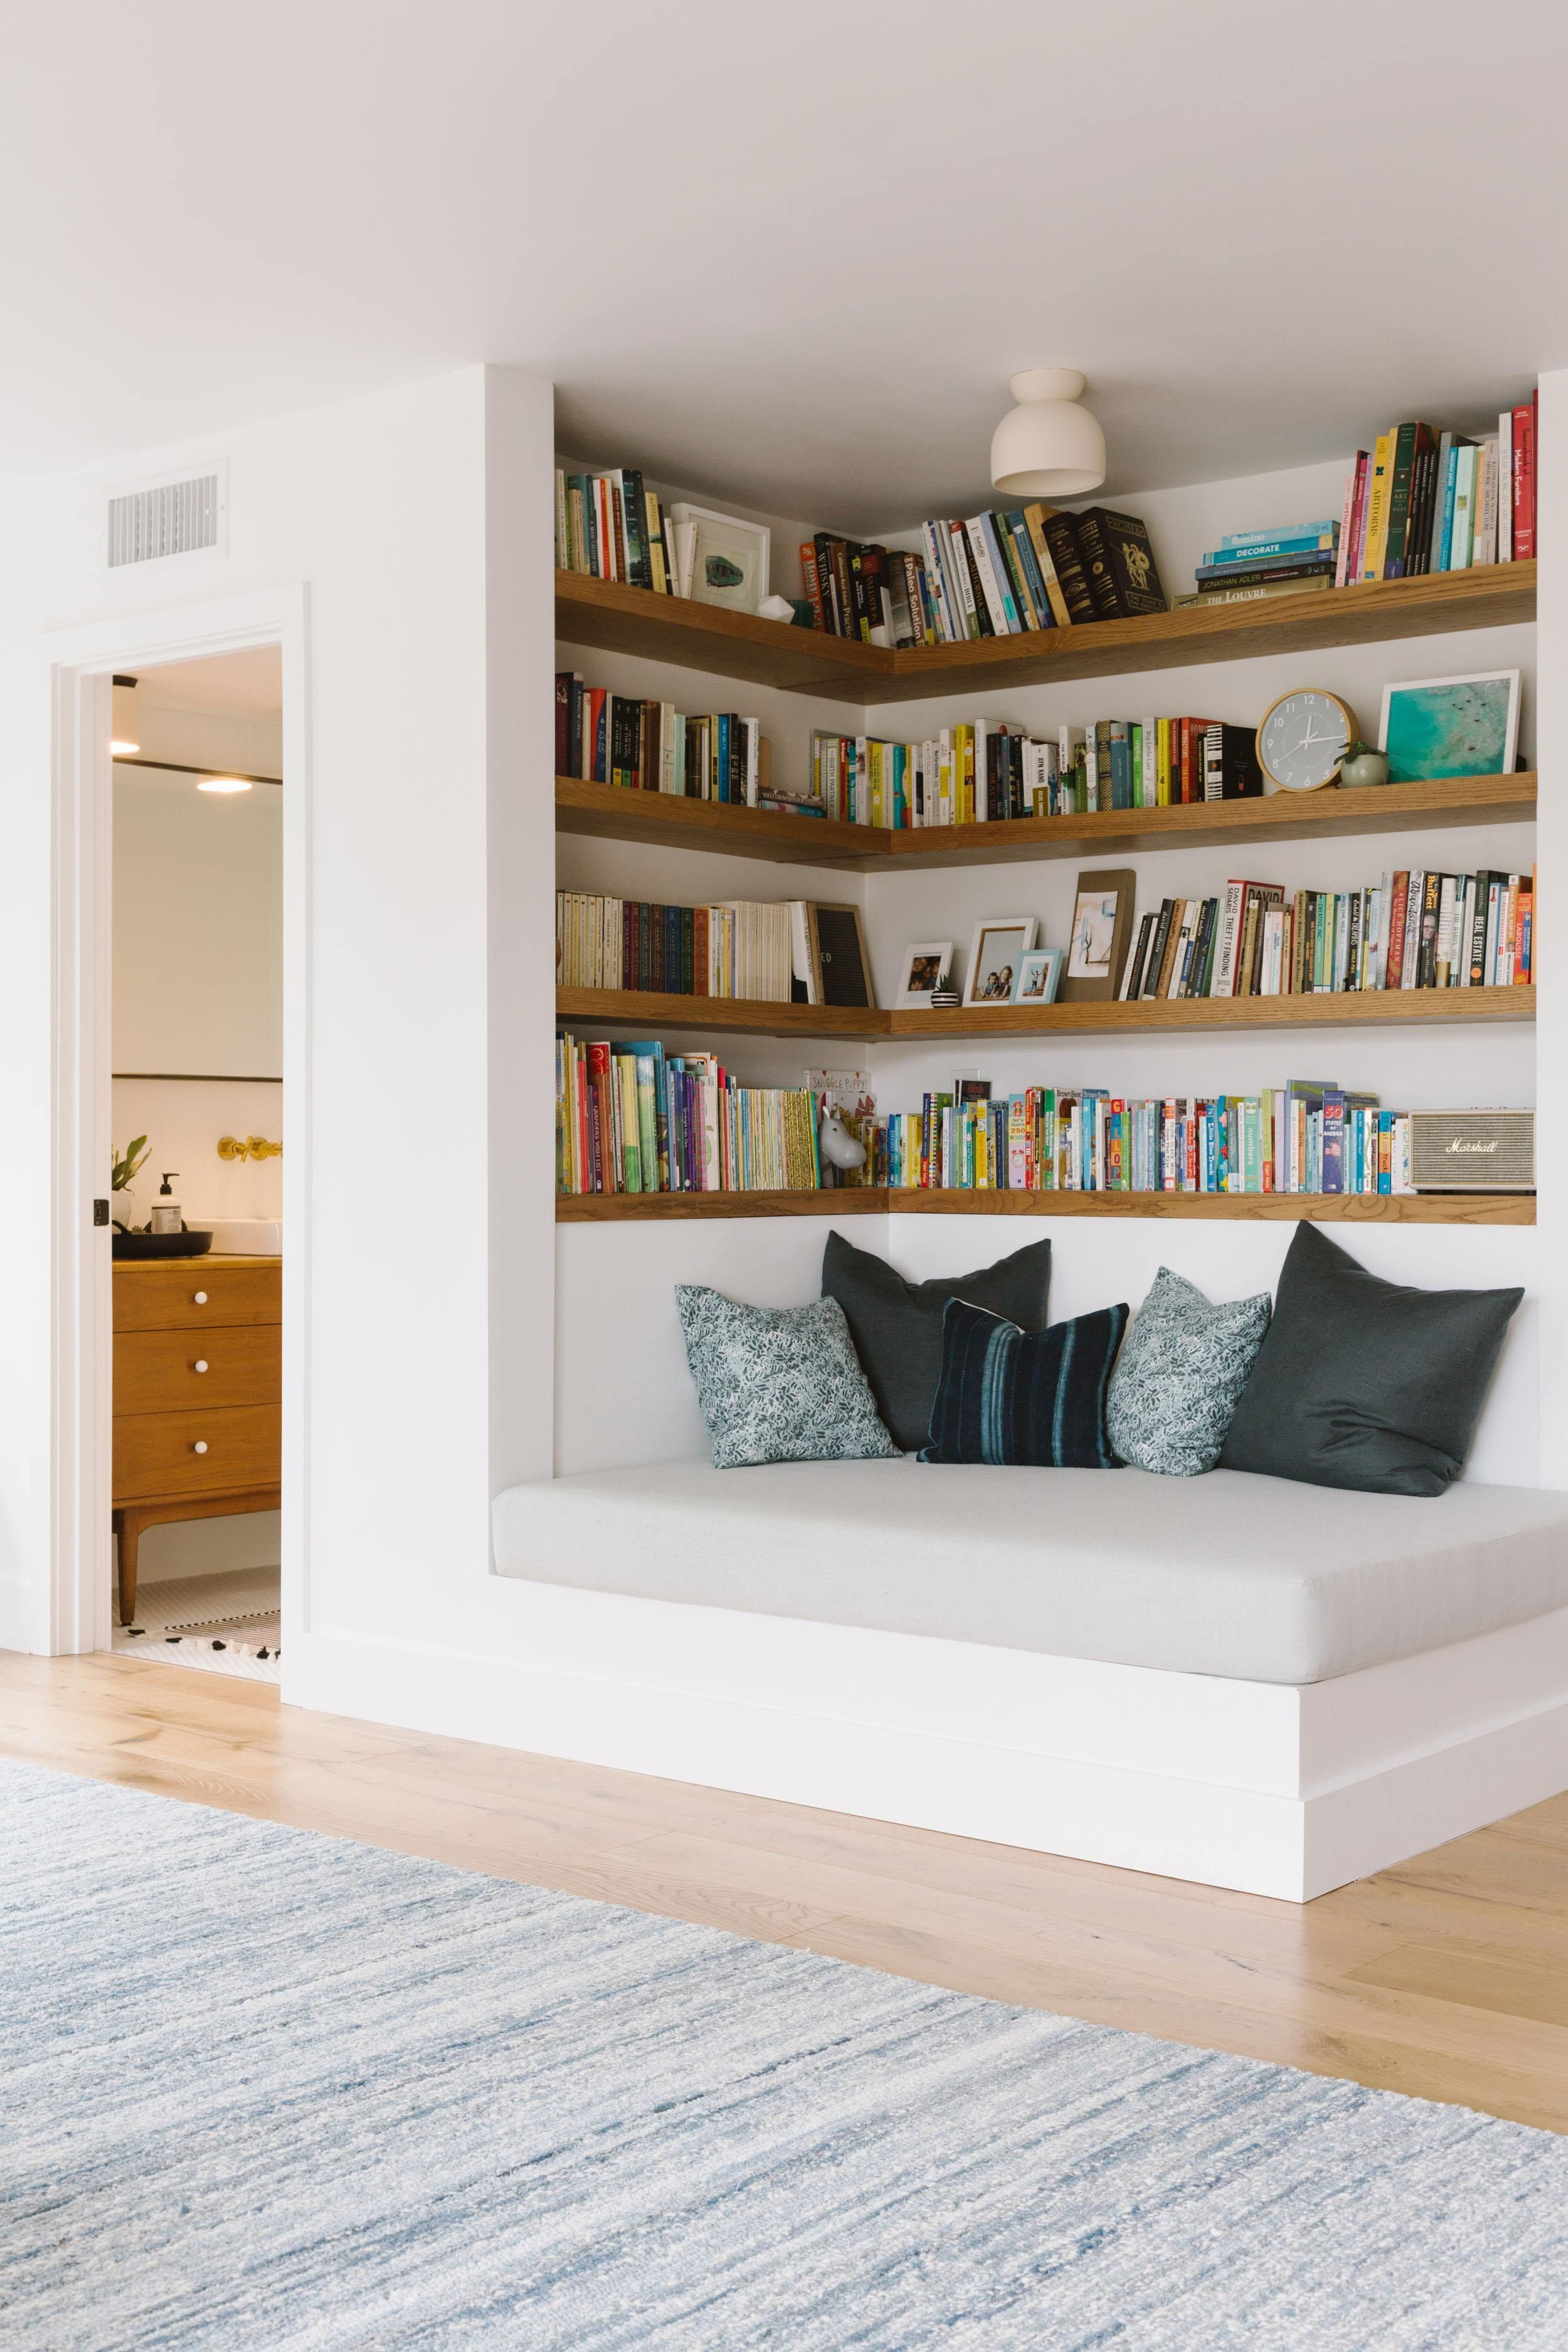 27 Reading Corners Ideas For Kids And Small Space Home Koees Blog Minimal House Design Small Master Bedroom House Interior